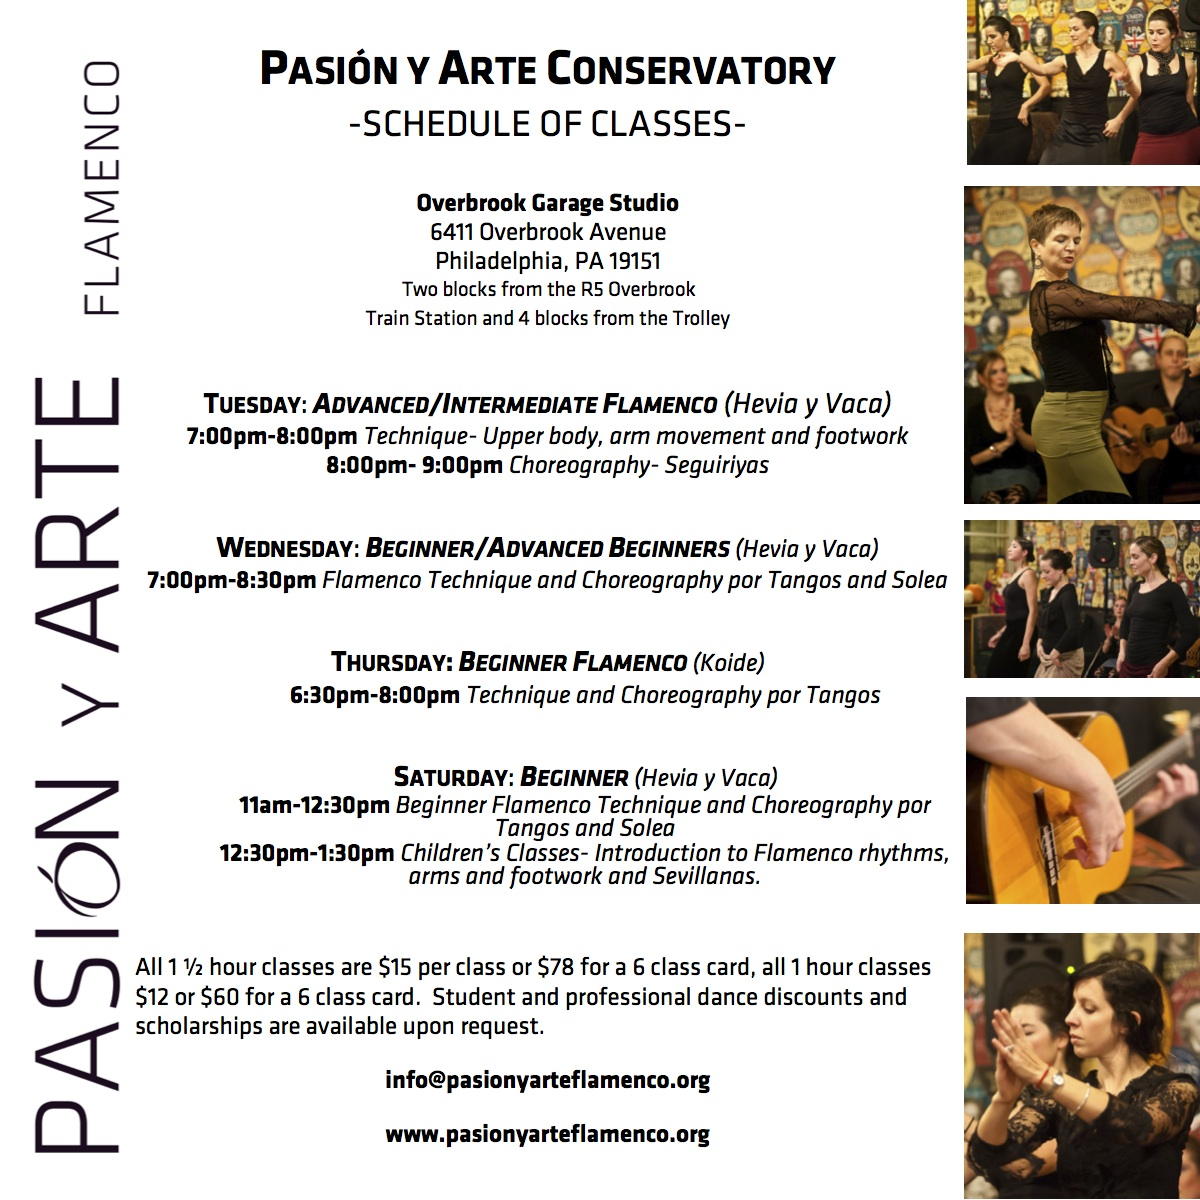 New PyA Conservatory Schedule